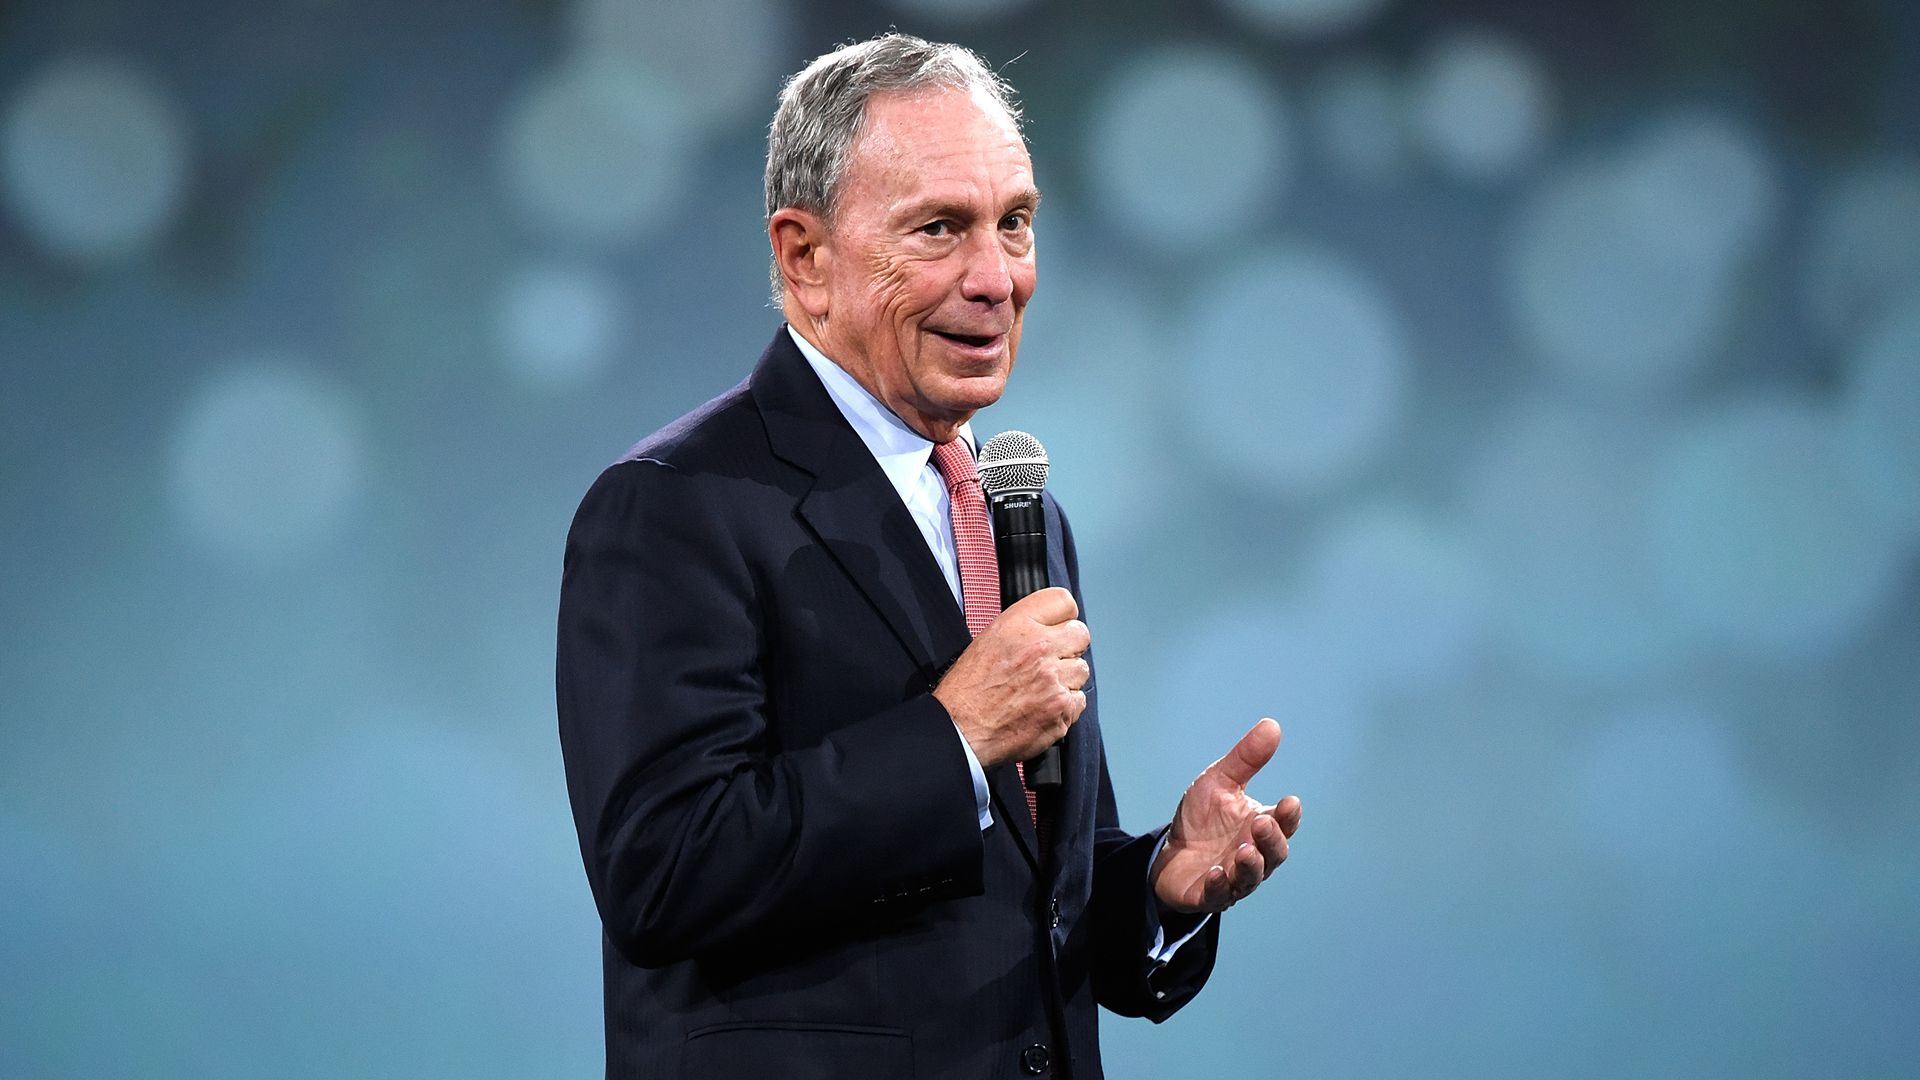 Mike Bloomberg smiles on stage